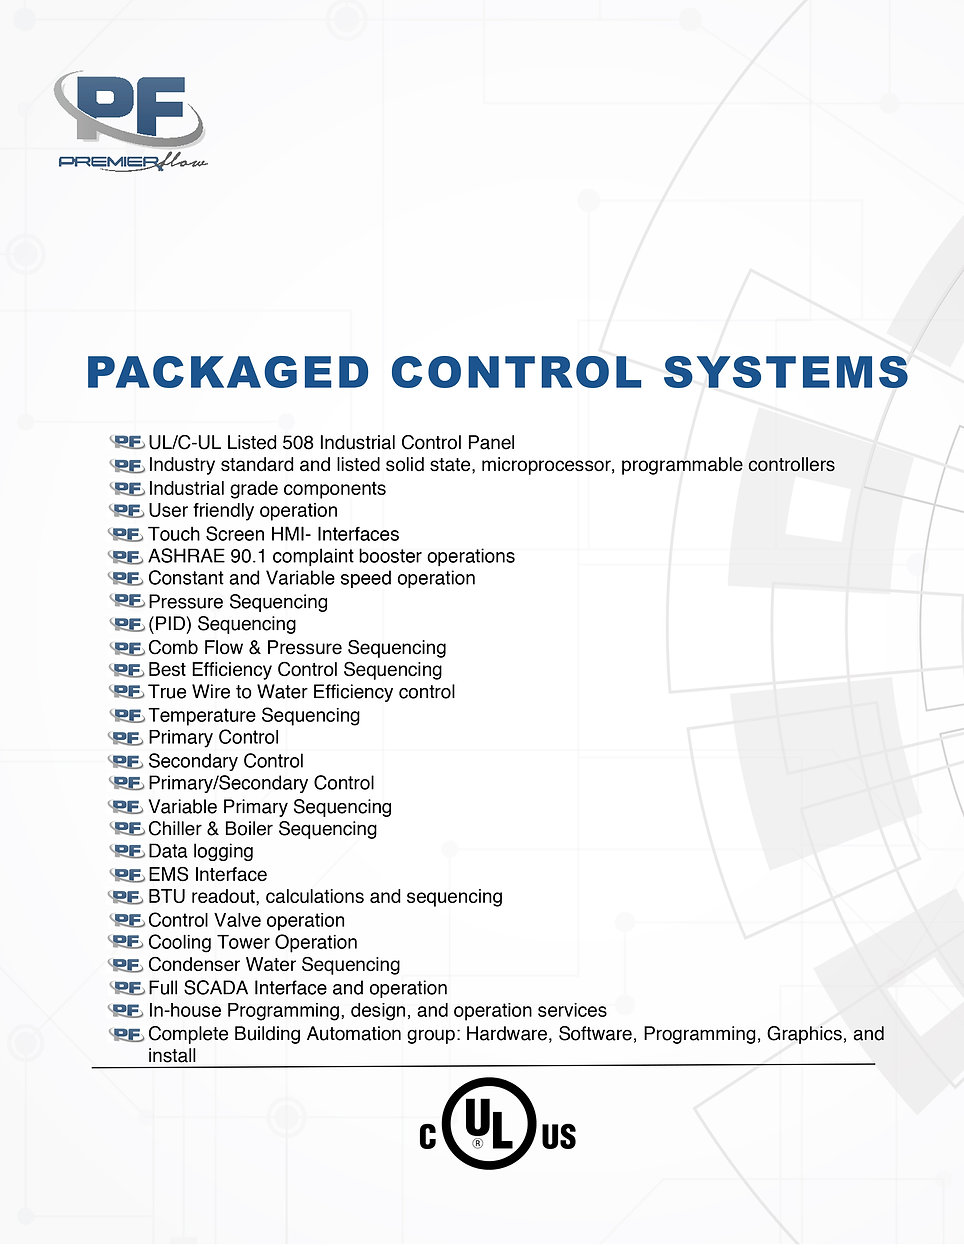 Packaged Control Systems.jpg